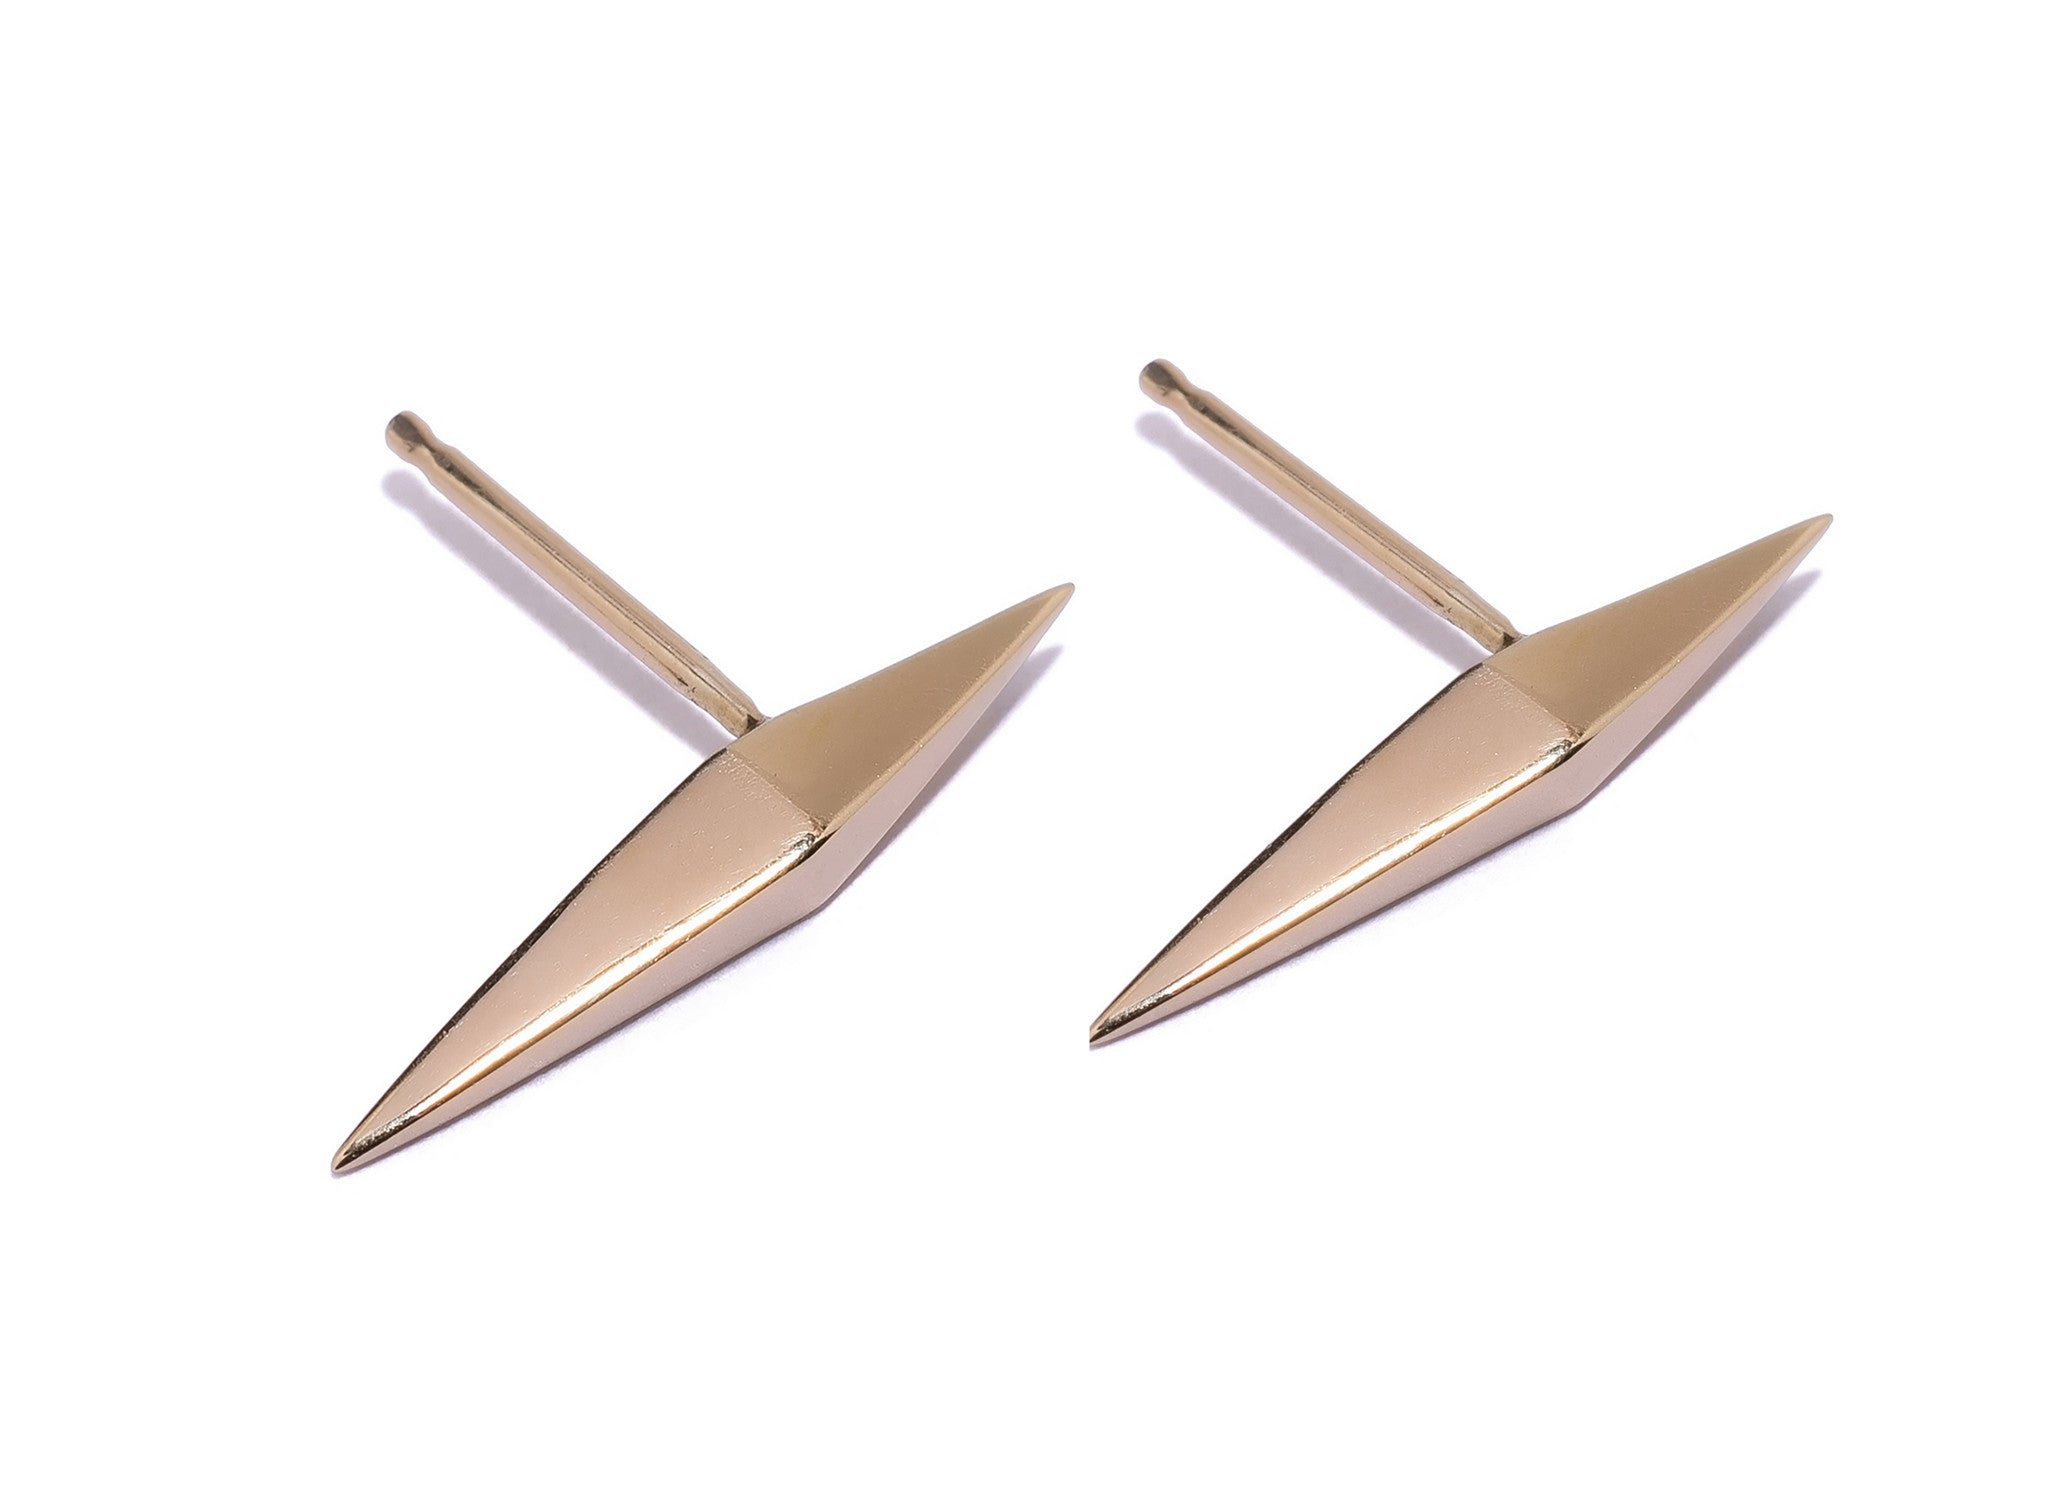 Thin DT Pyramid Spike Stud Earrings Wendy Nichol fine Jewelry Designer 14k Gold Sterling Silver